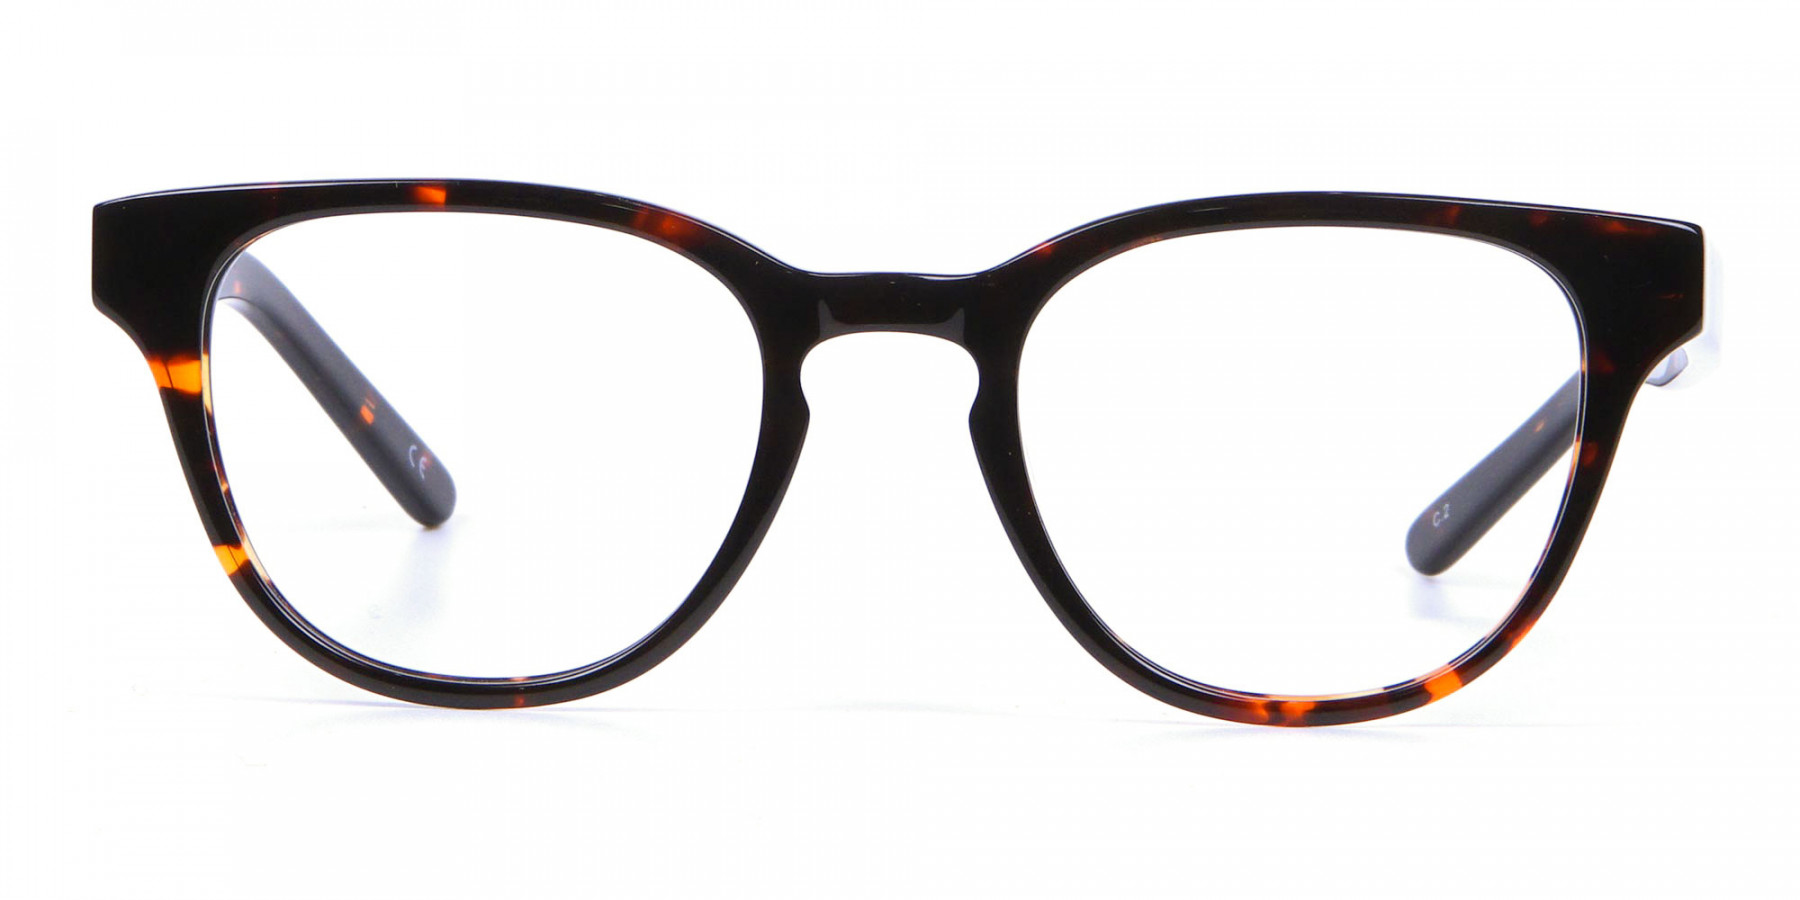 Black and Brown Glasses